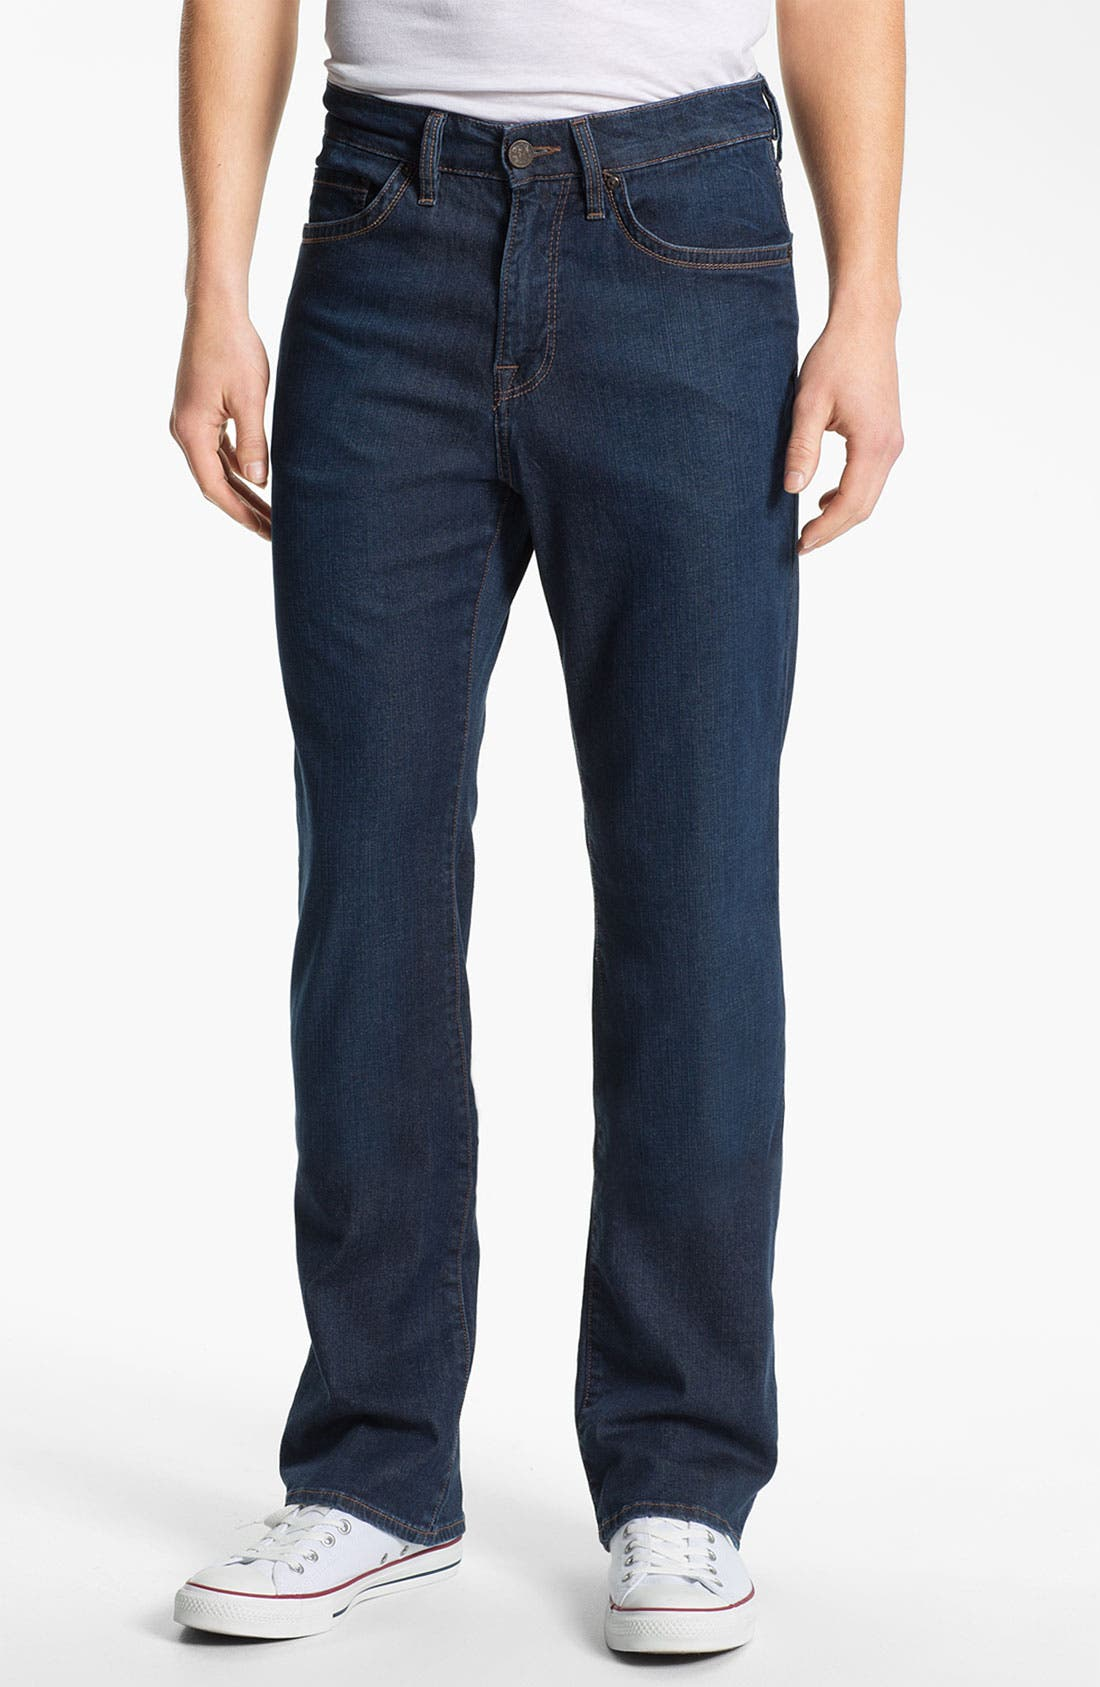 Main Image - 34 Heritage 'Charisma' Classic Relaxed Fit Jeans (Dark Cashmere) (Online Only) (Regular & Tall)